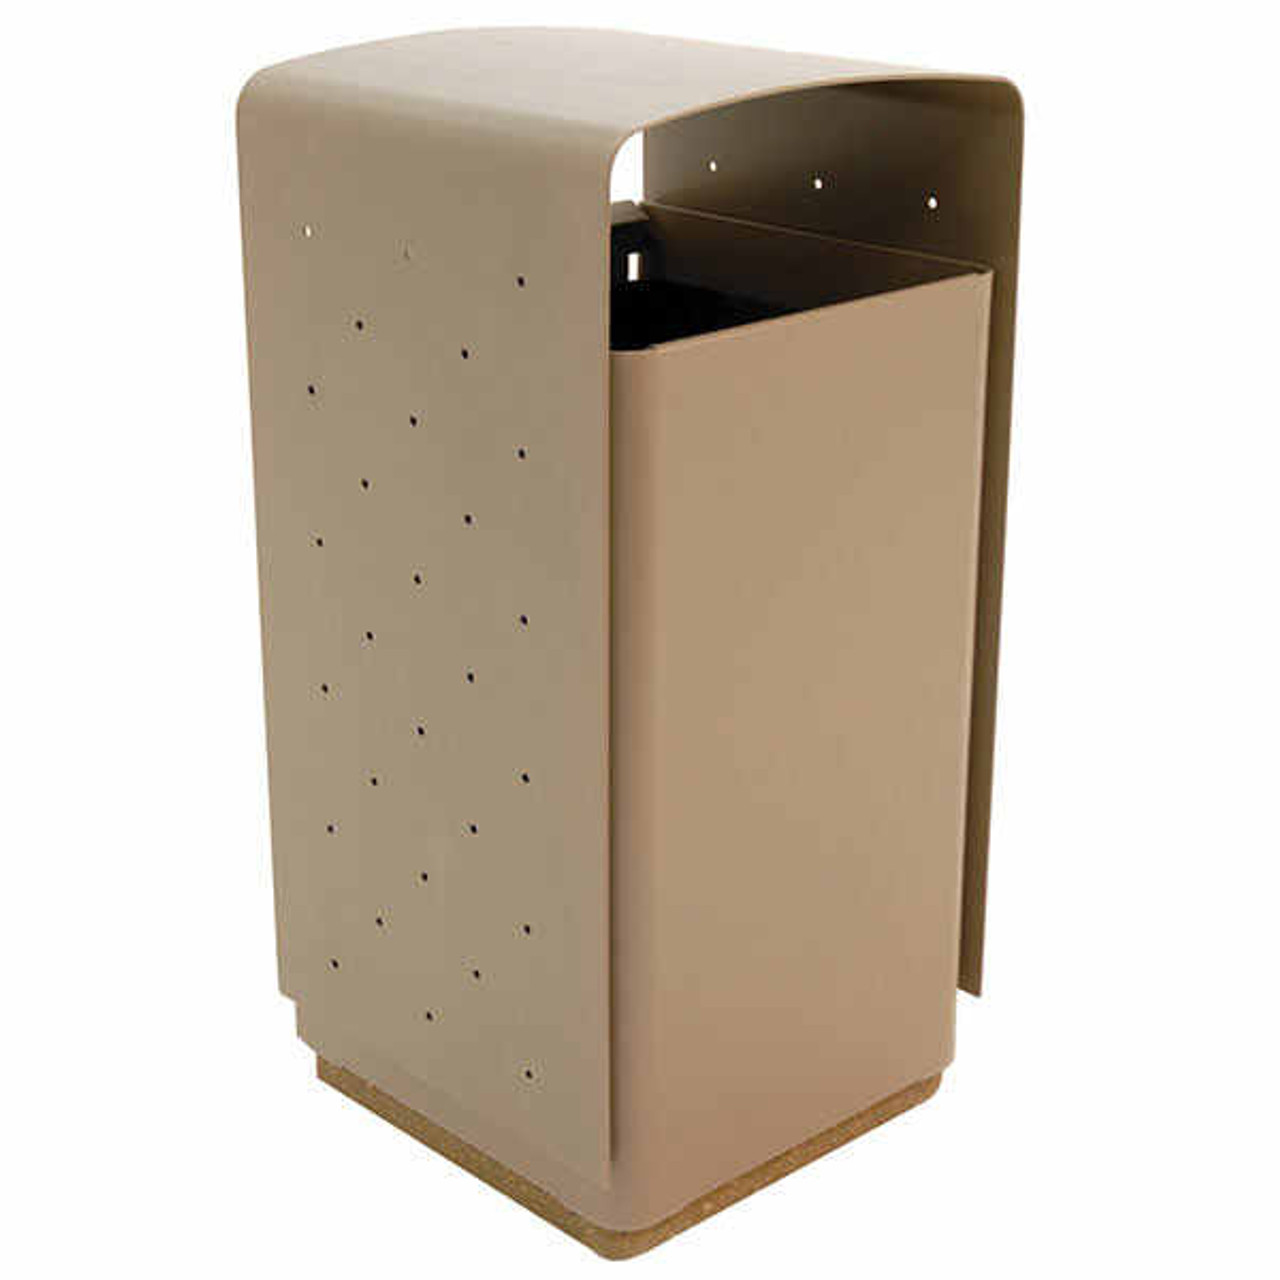 45 Gallon Metal Indoor Outdoor Trash Can with Concrete Base EB5104